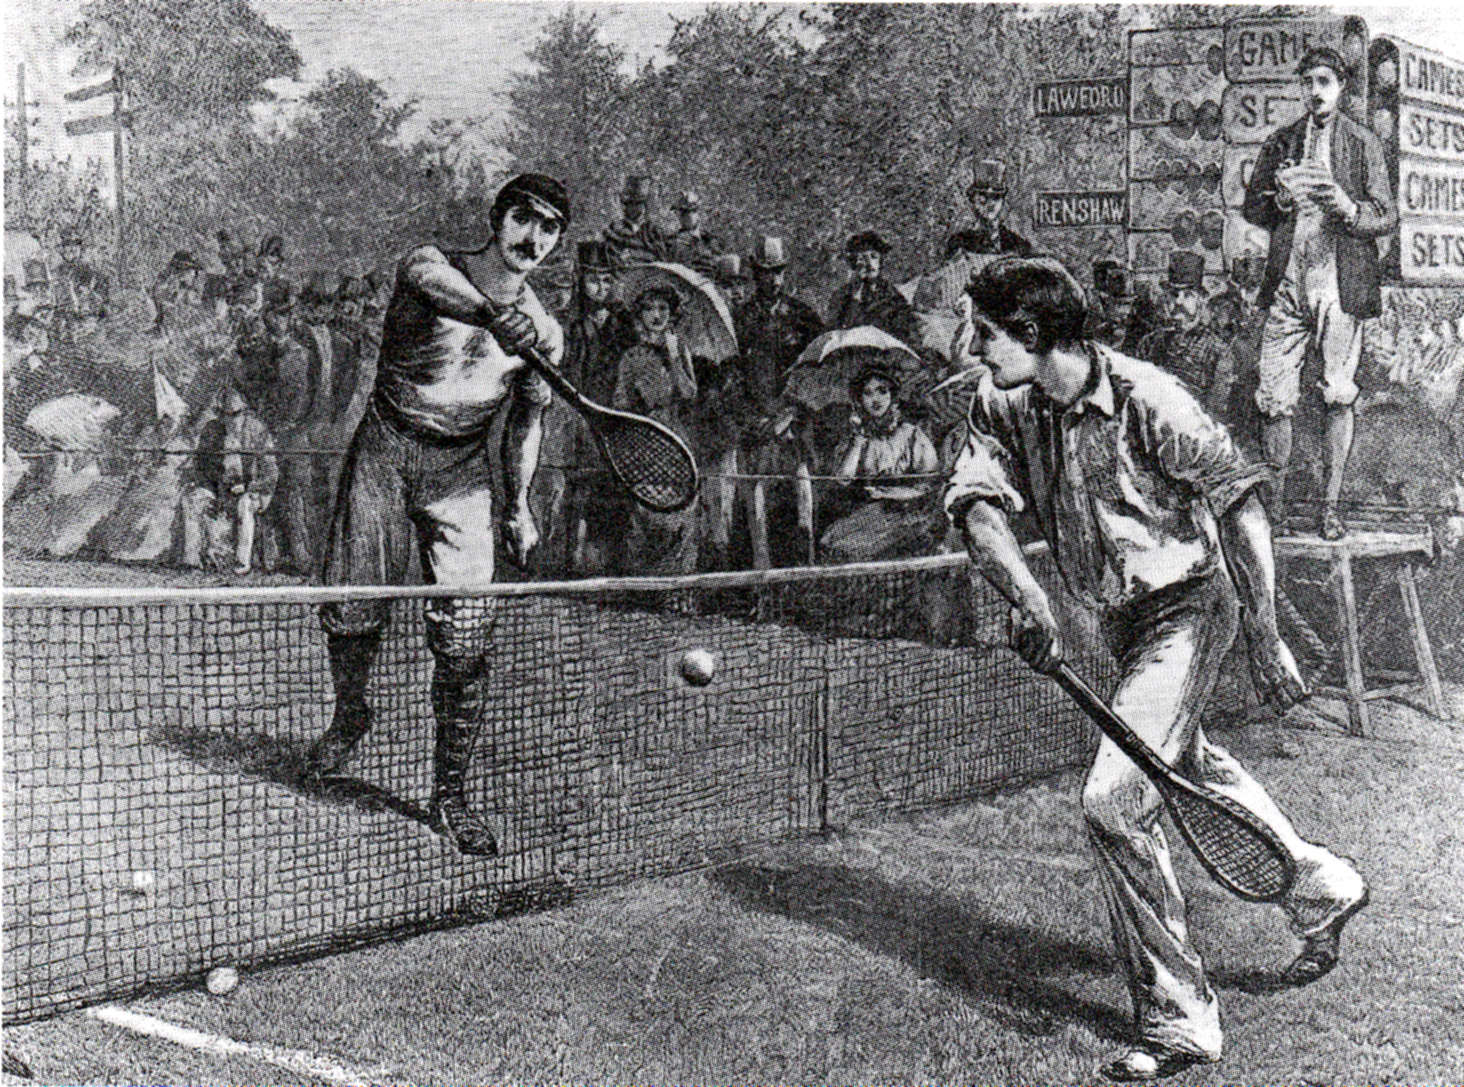 William Renshaw and Herbert Lawford, playing a match at the Wimbledon Championships in the 1880s